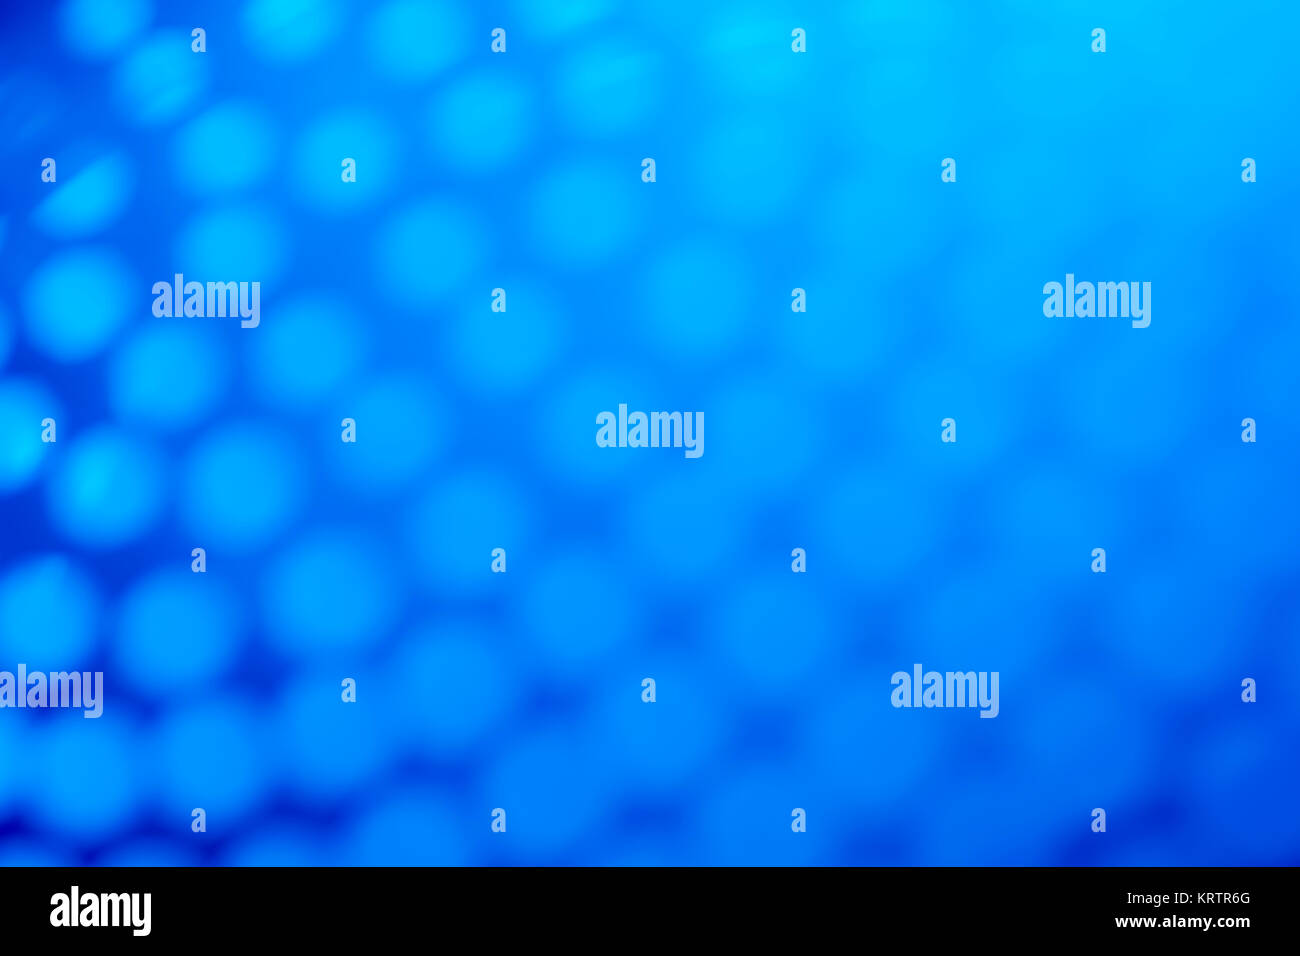 Abstract blue dots as photographic backdrop or background. Stock Photo